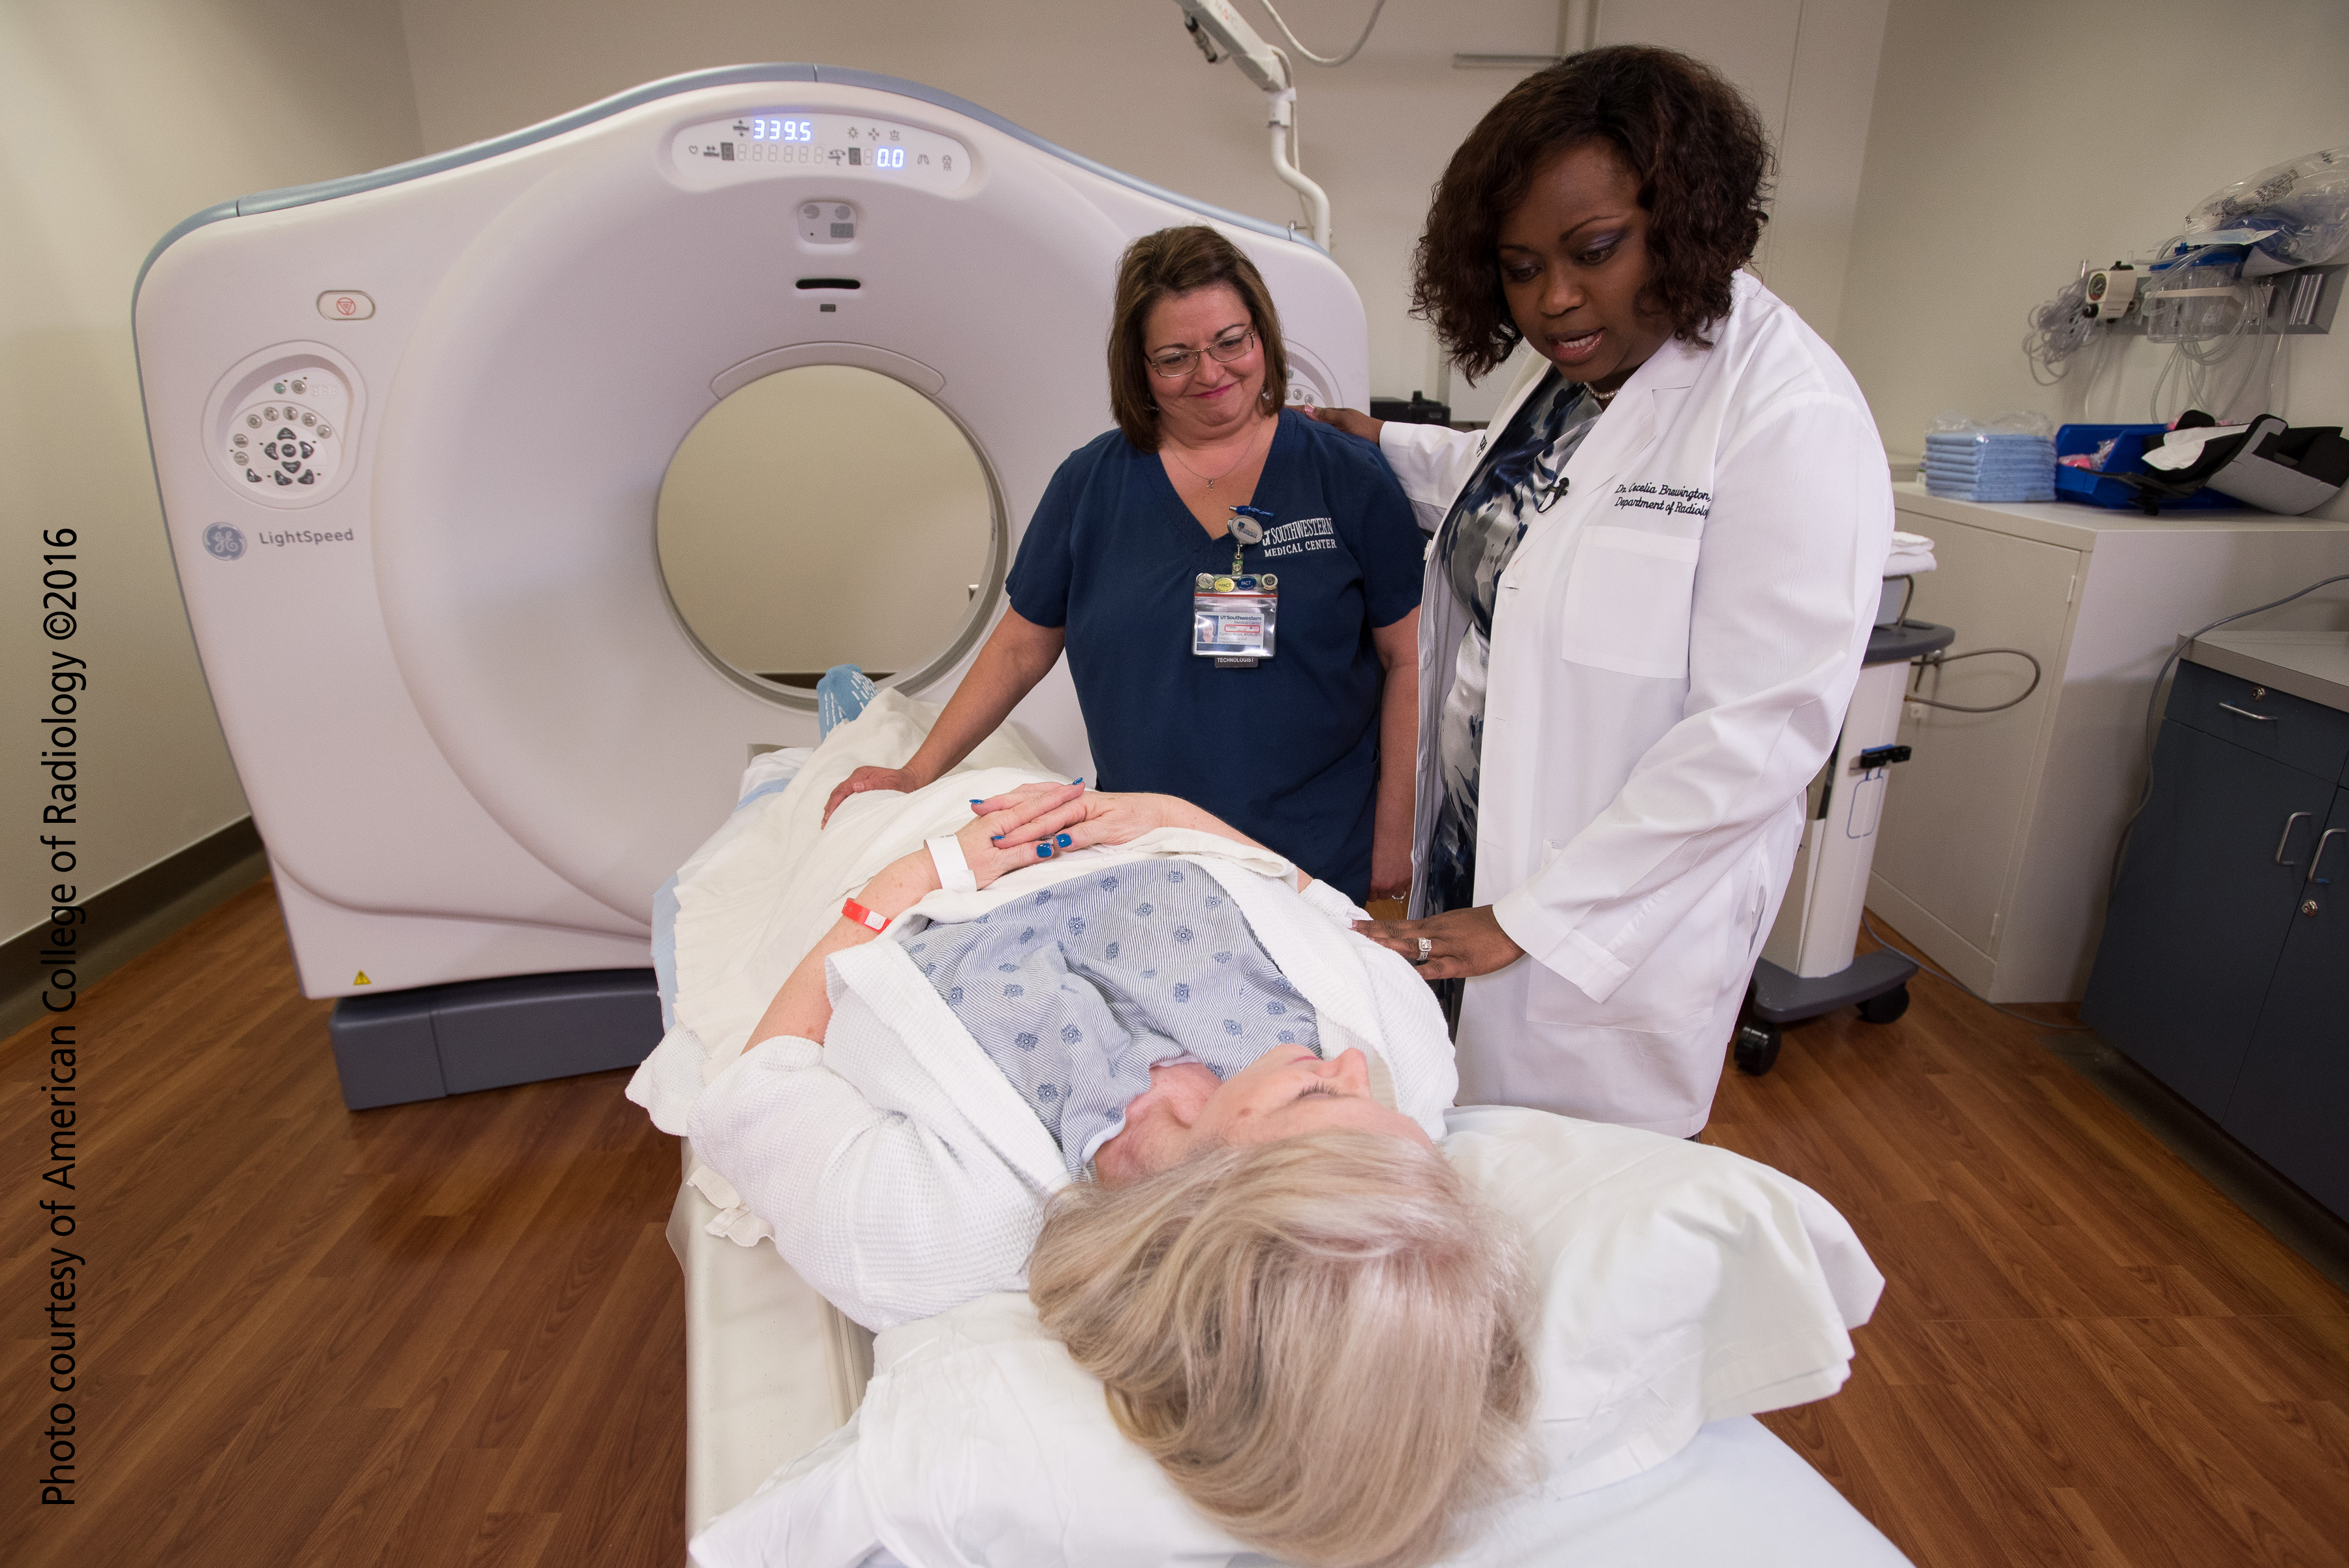 Good To Go Insurance >> CT Colonography a Good Fit for New CRC Screening Age | voiceofradiologyblog